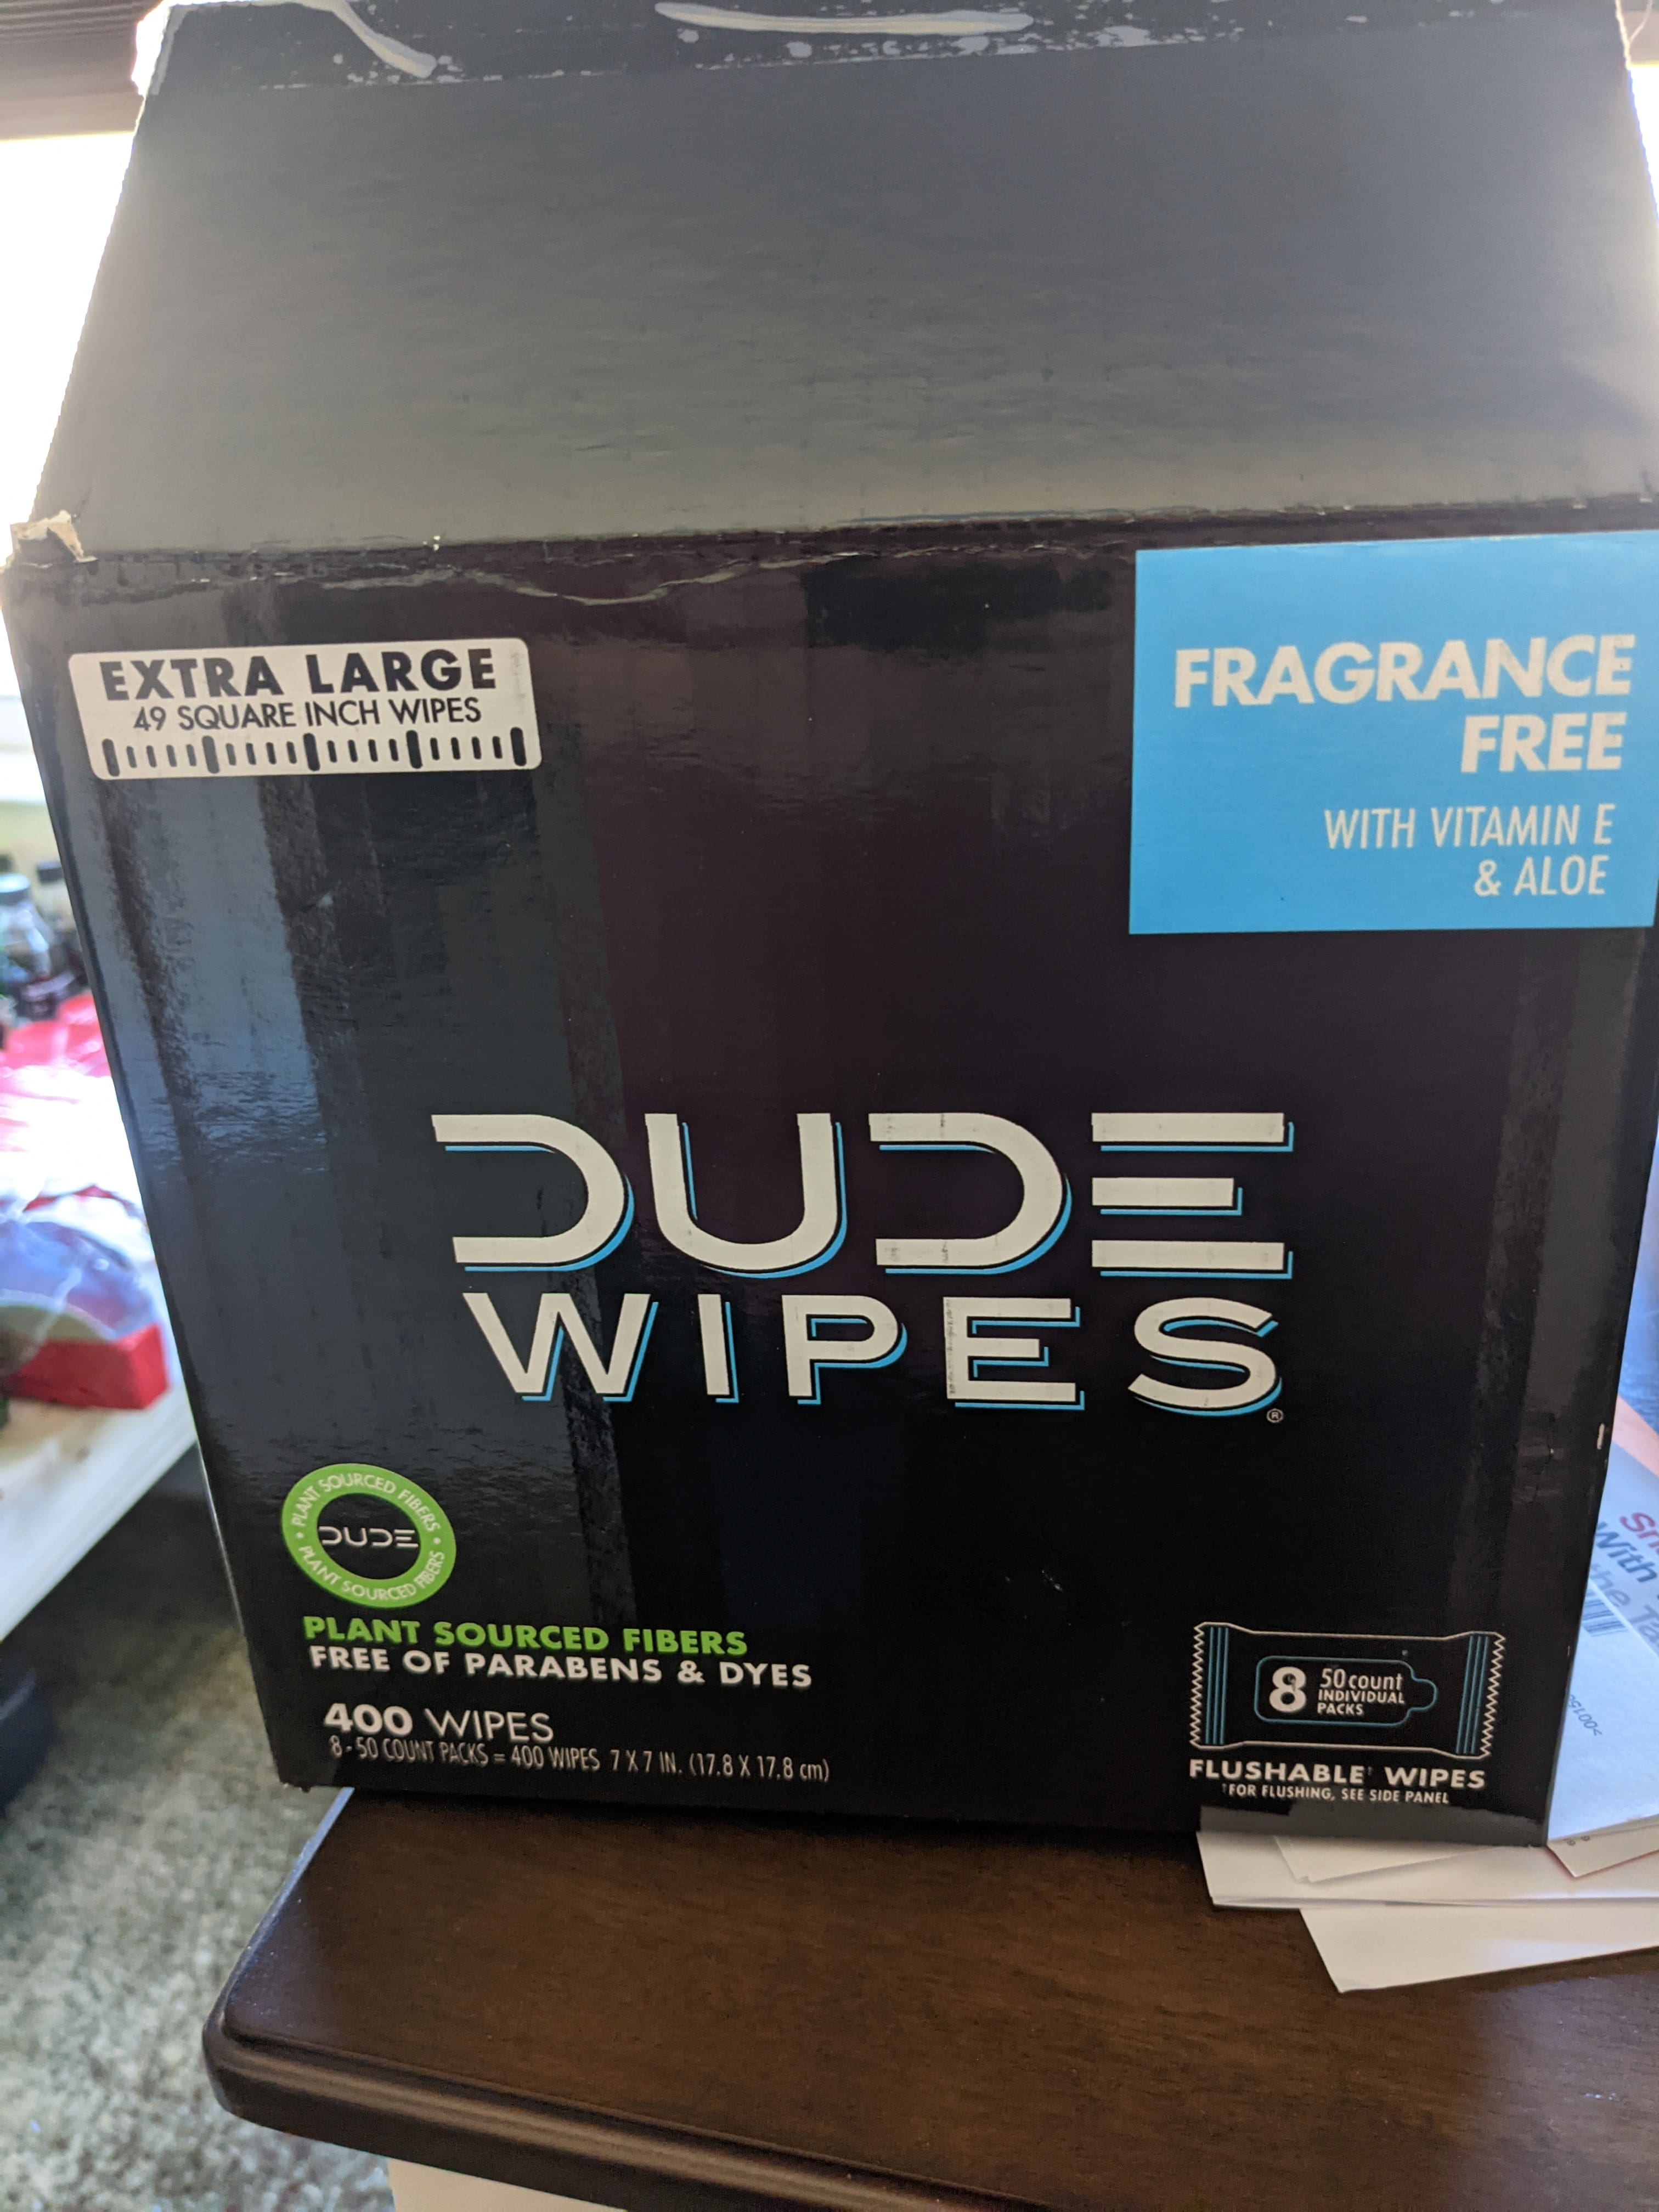 DUDE Wipes, Flushable Wipes, Extra Large and Fragrance-Free Wipes (400 ct.) $6.61 in store clearance Sams Club